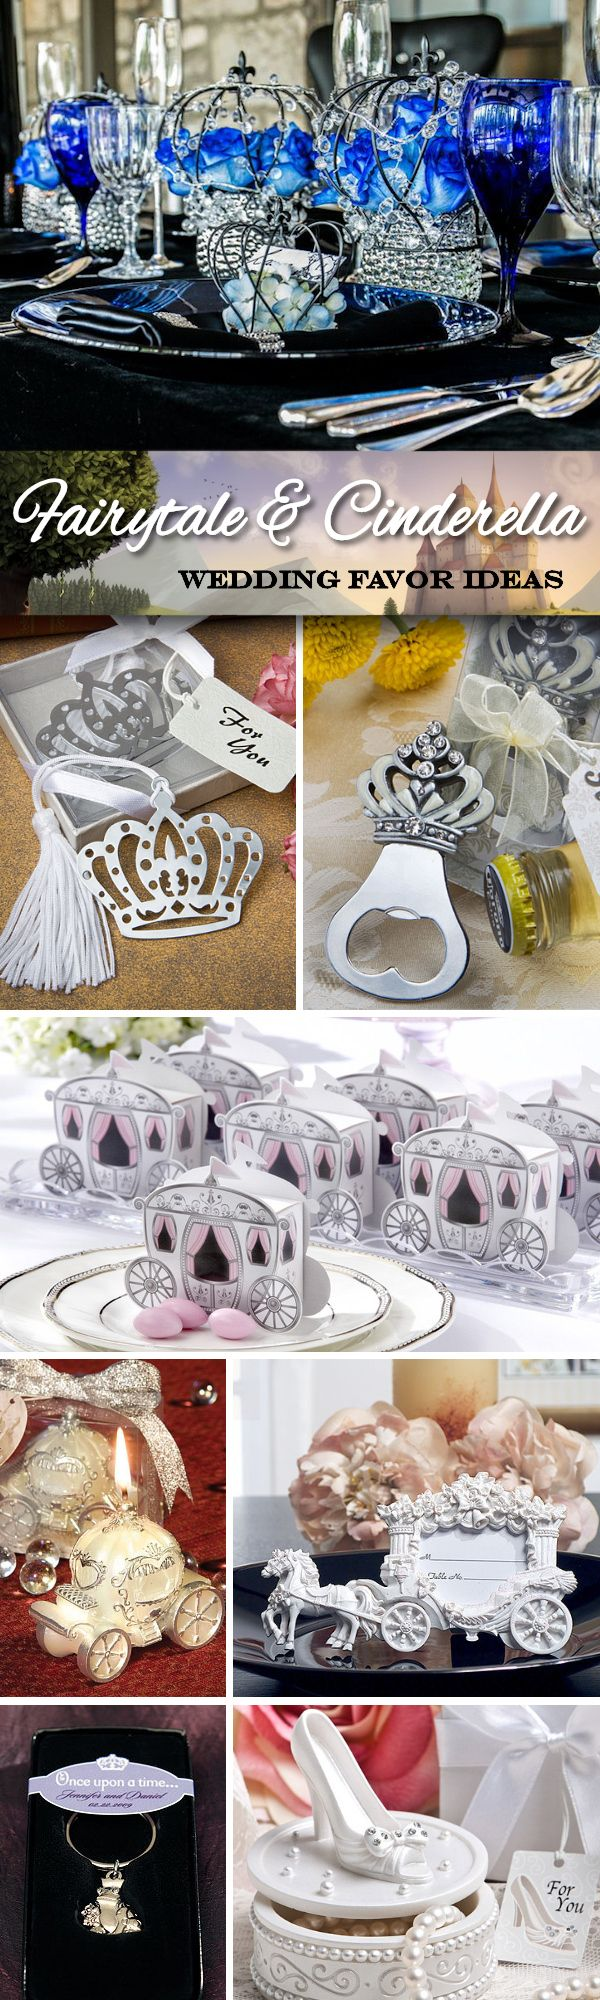 Having a Fairytale or Cinderella themed wedding? Check out these ...